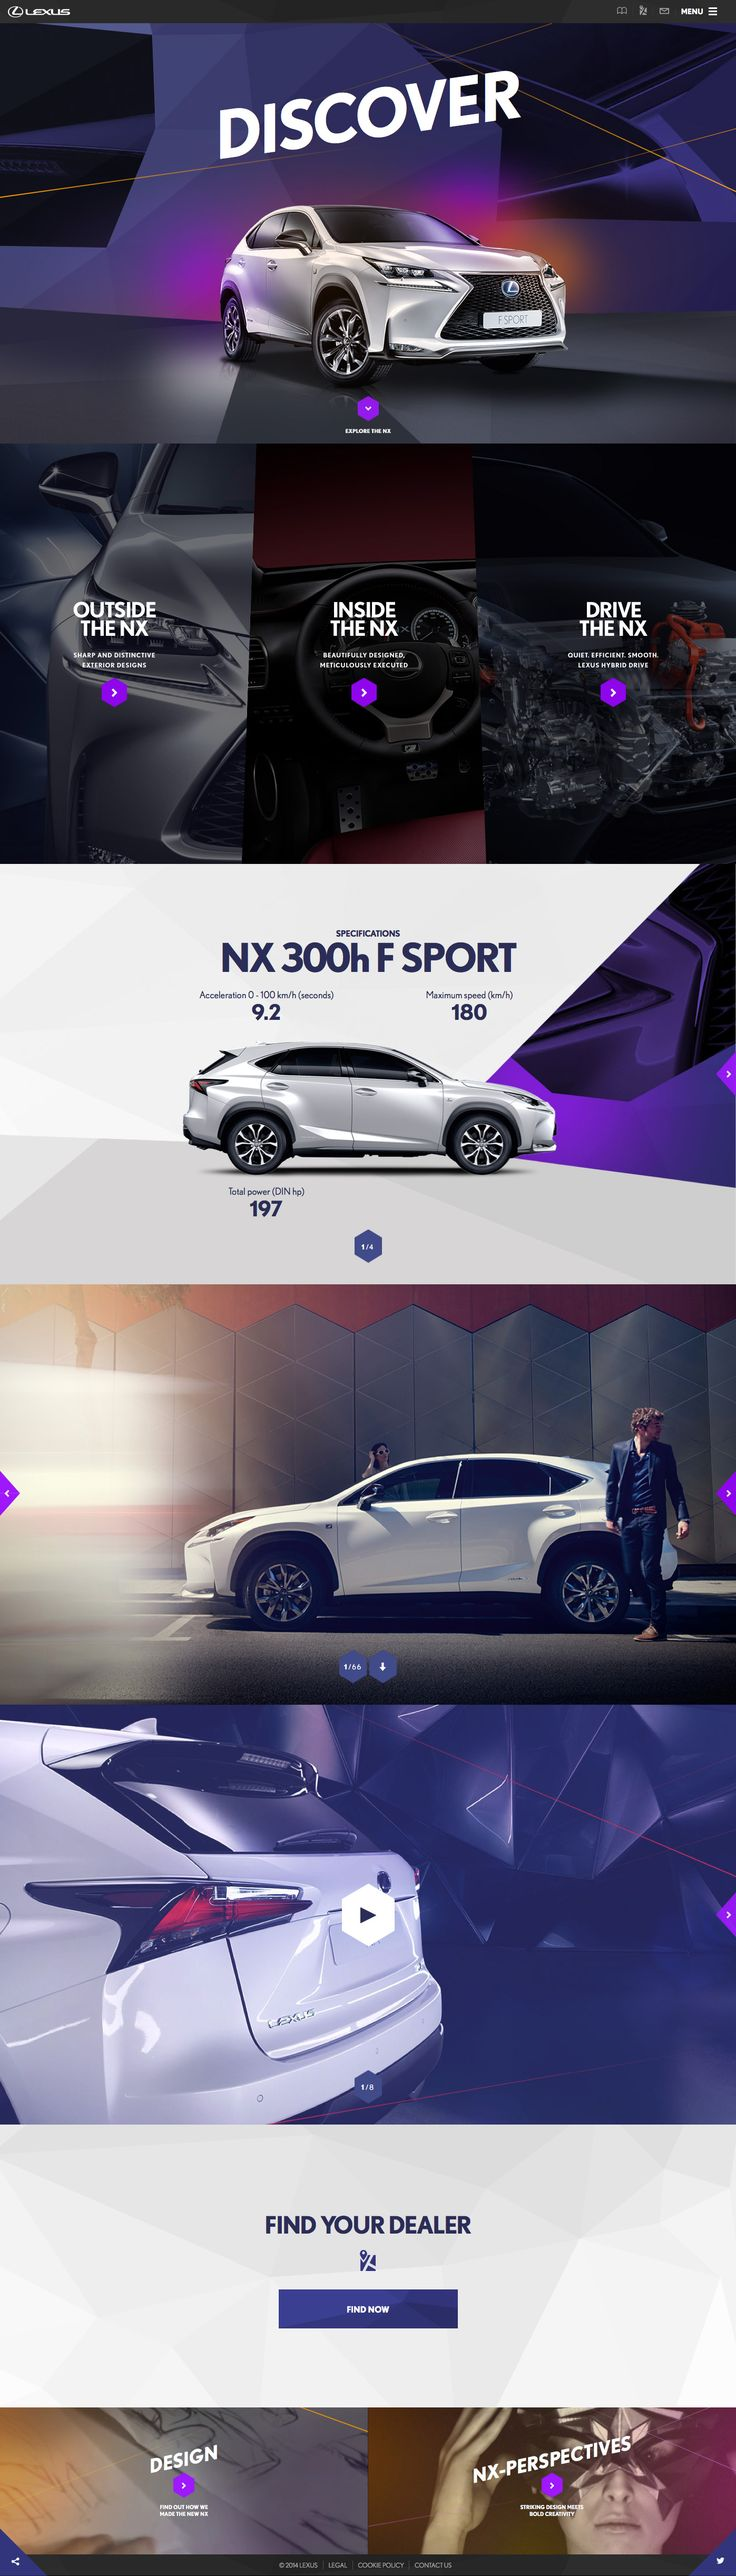 Lexus NX. A beautiful car deserves a beautiful website. #WebDesign #Automotive #Cars #Design